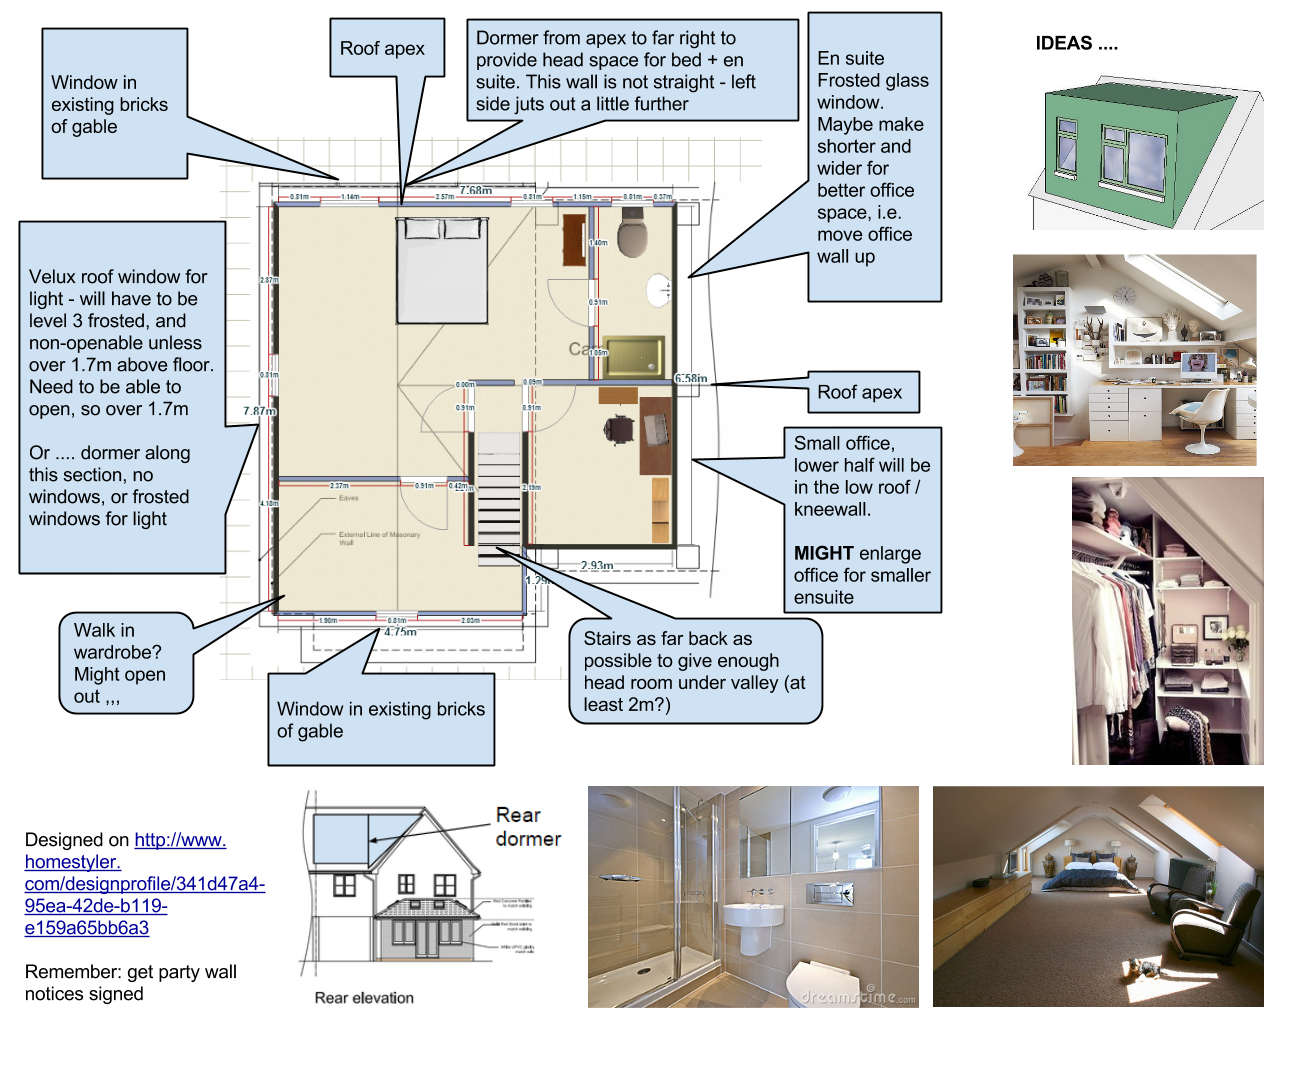 awesome jons loft plans with ensuite layout ideas - Planning An Ensuite